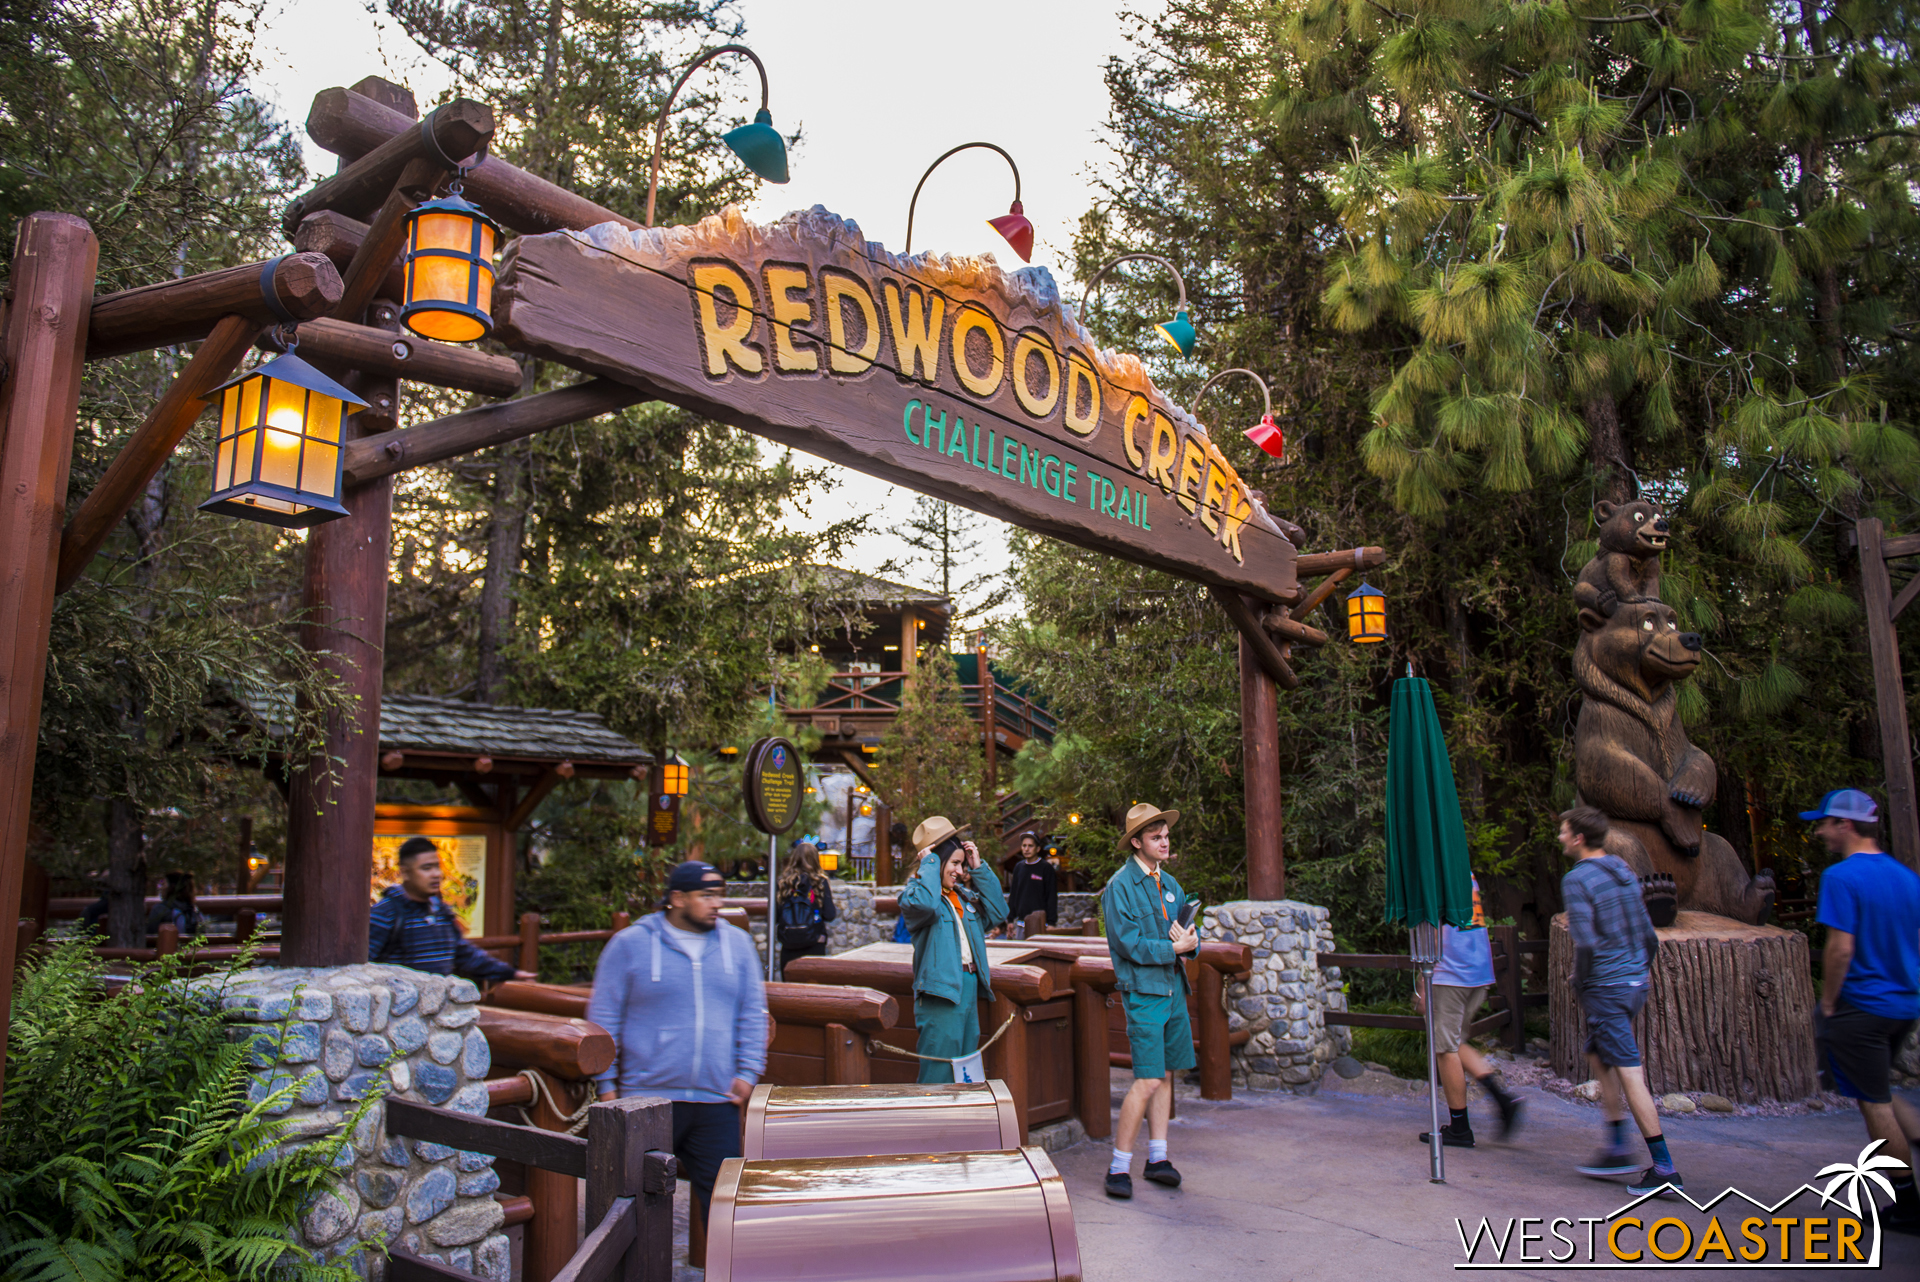 The Redwood Creek Challenge Trail has reopened over in Disney California Adventure.